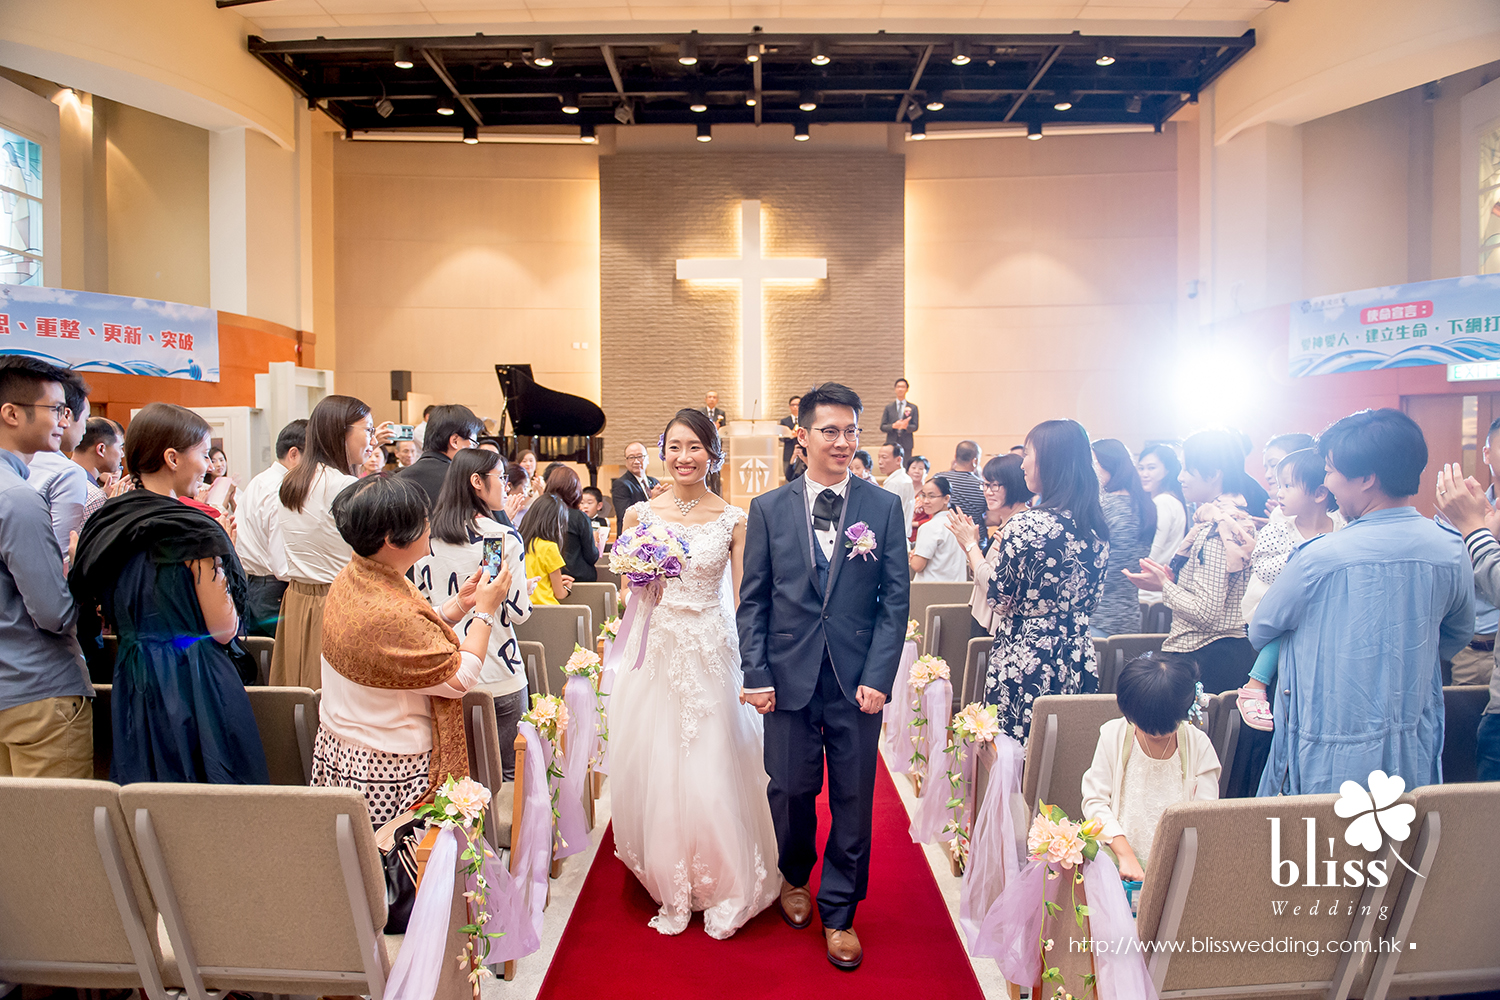 Kelly & Anthony (婚禮.攝影 Oct 2017)